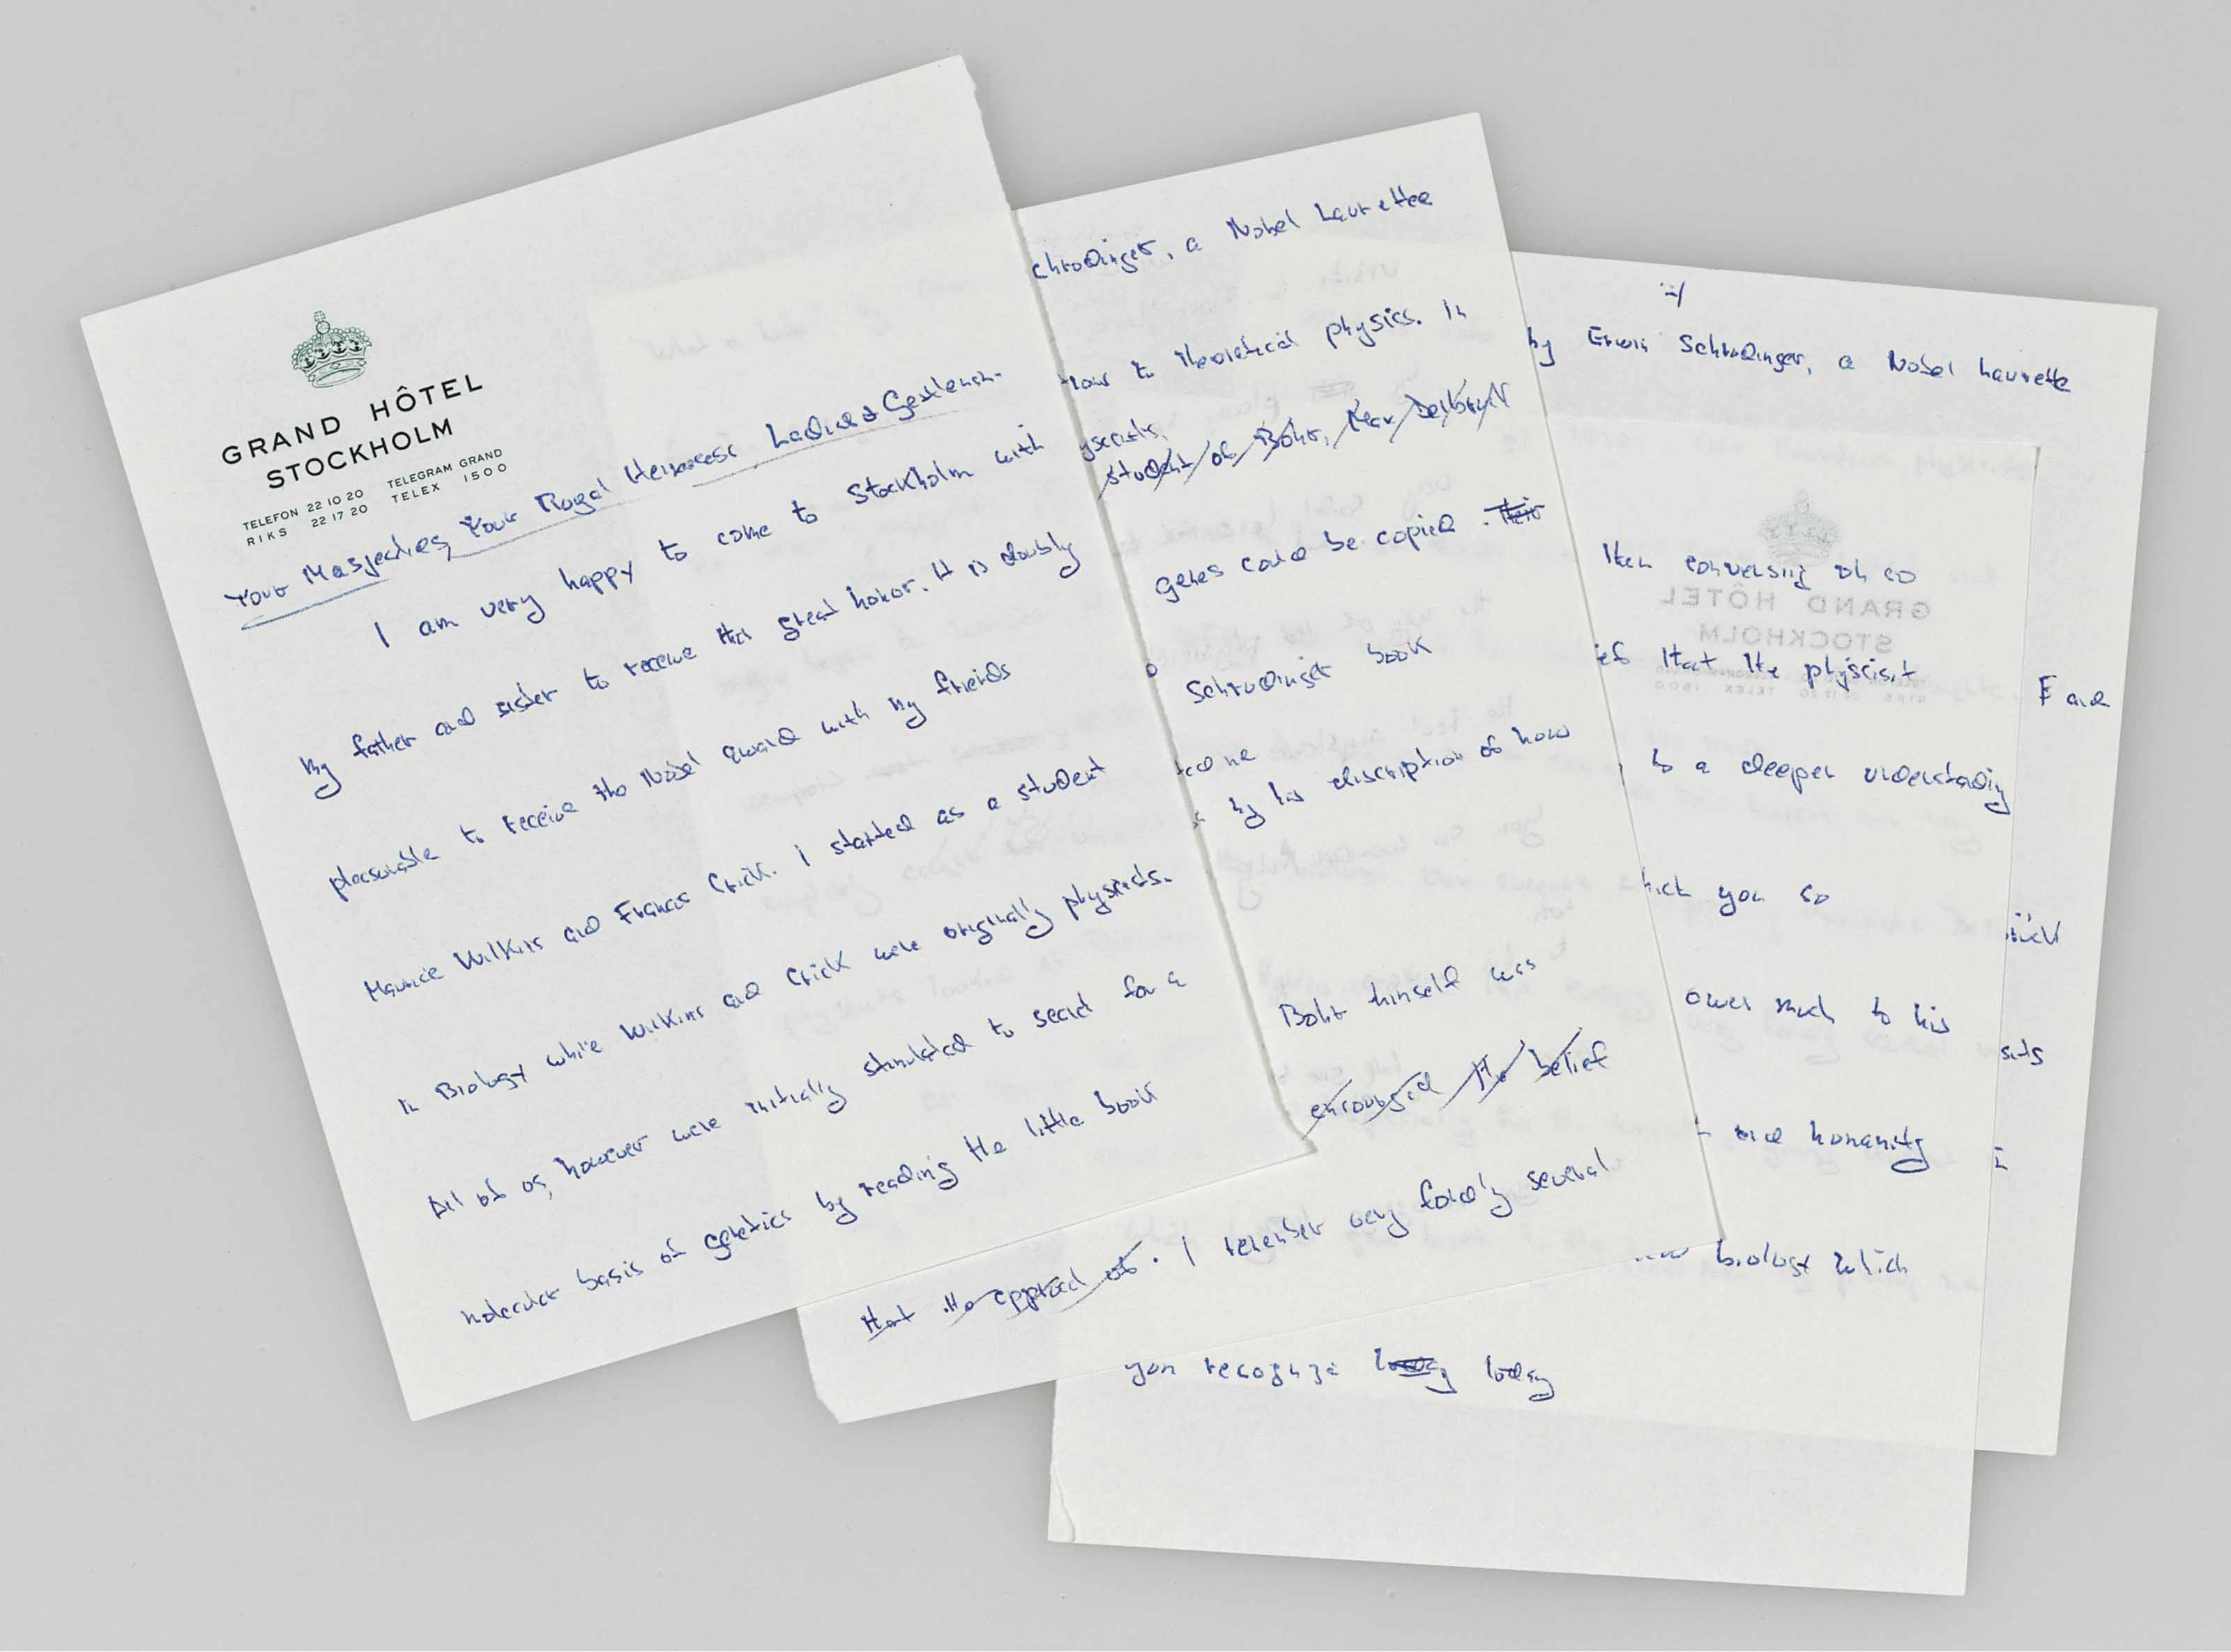 """WATSON, James D. The Nobel Prize """"Banquet"""" Speech . Manuscript draft notes for the Nobel Prize Acceptance Speech. 5 pages on four leaves, small 8vo (170 x 135 mm), in blue ink on Grand Hotel Stockholm stationery. Stockholm, December 9,1962."""